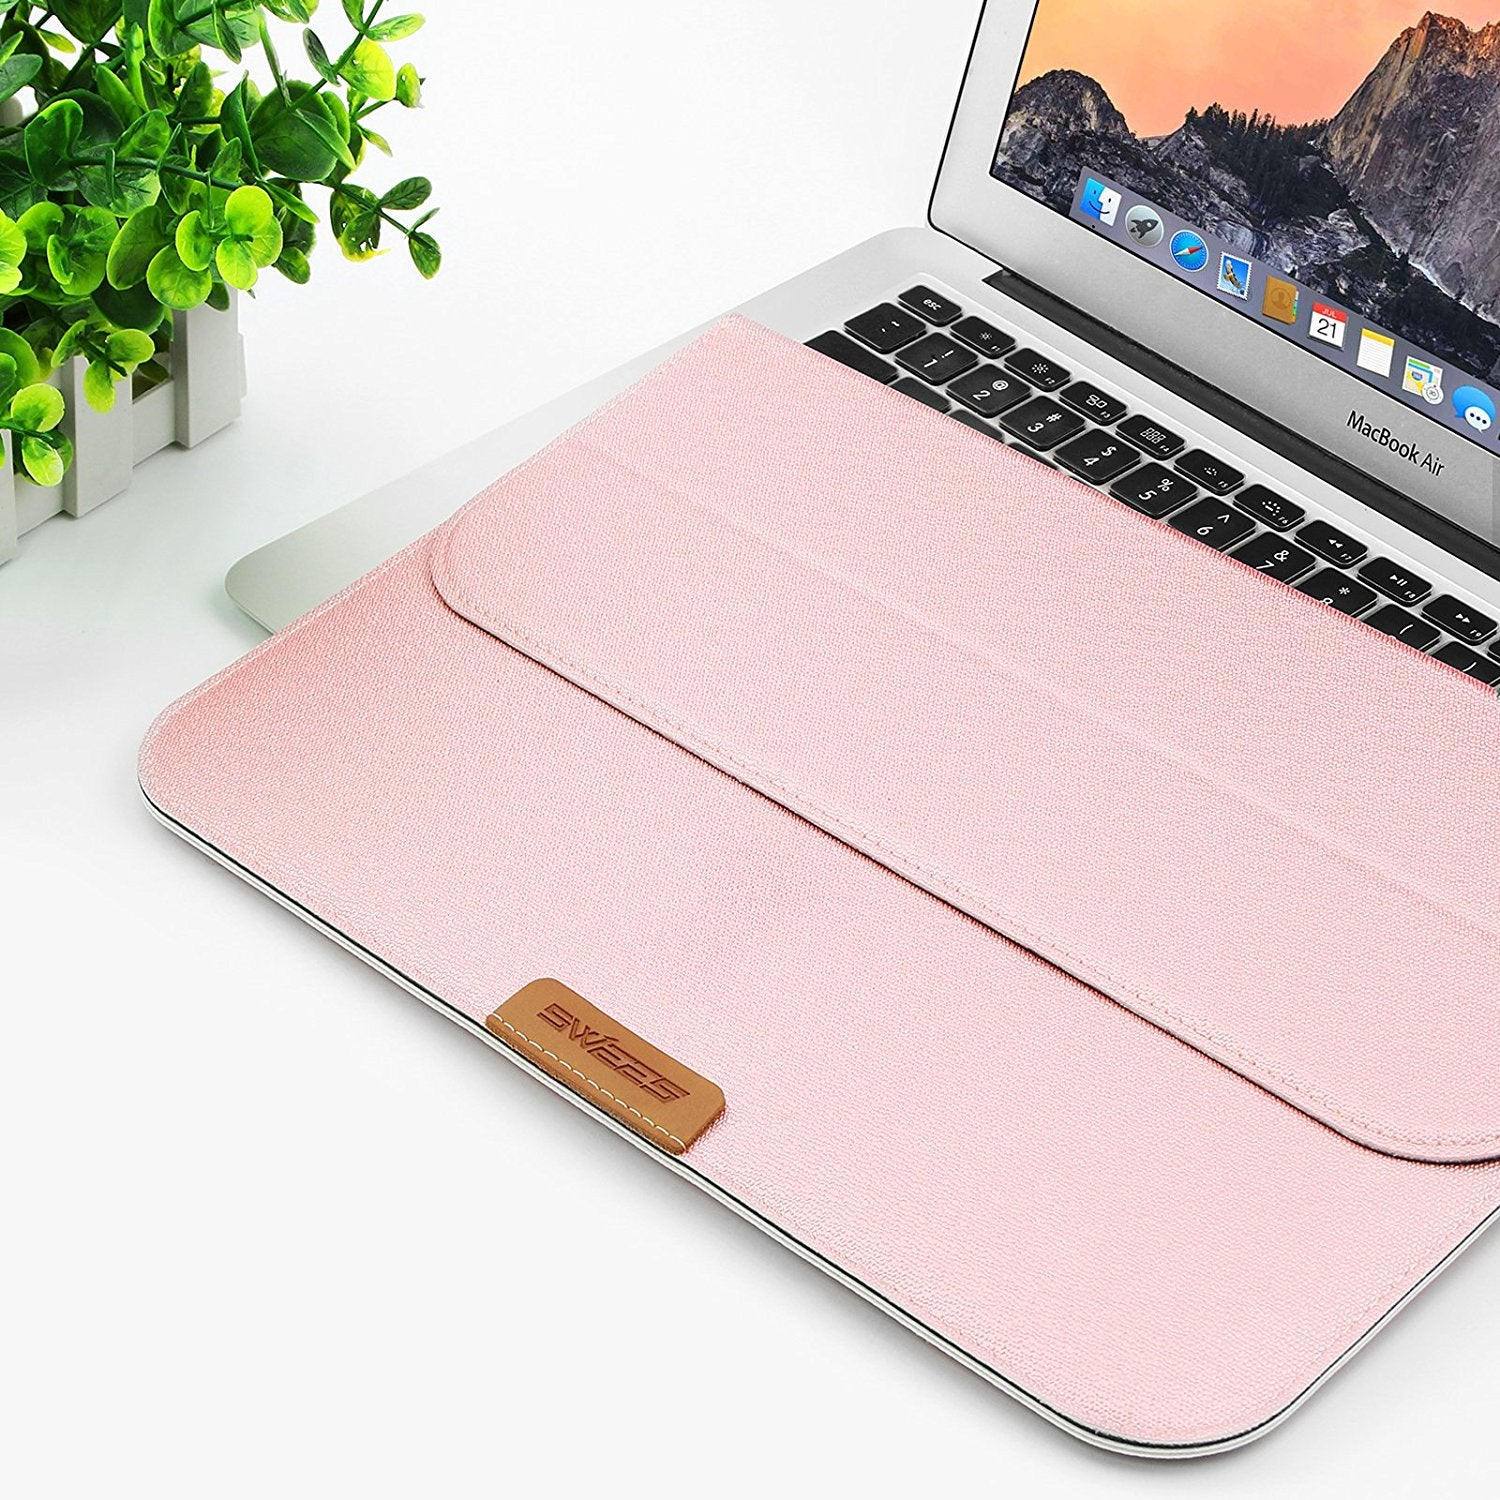 reputable site 6dcbb 4c265 The Best Macbook 12 Inch Case Sleeve with Stand Function on amazon ...